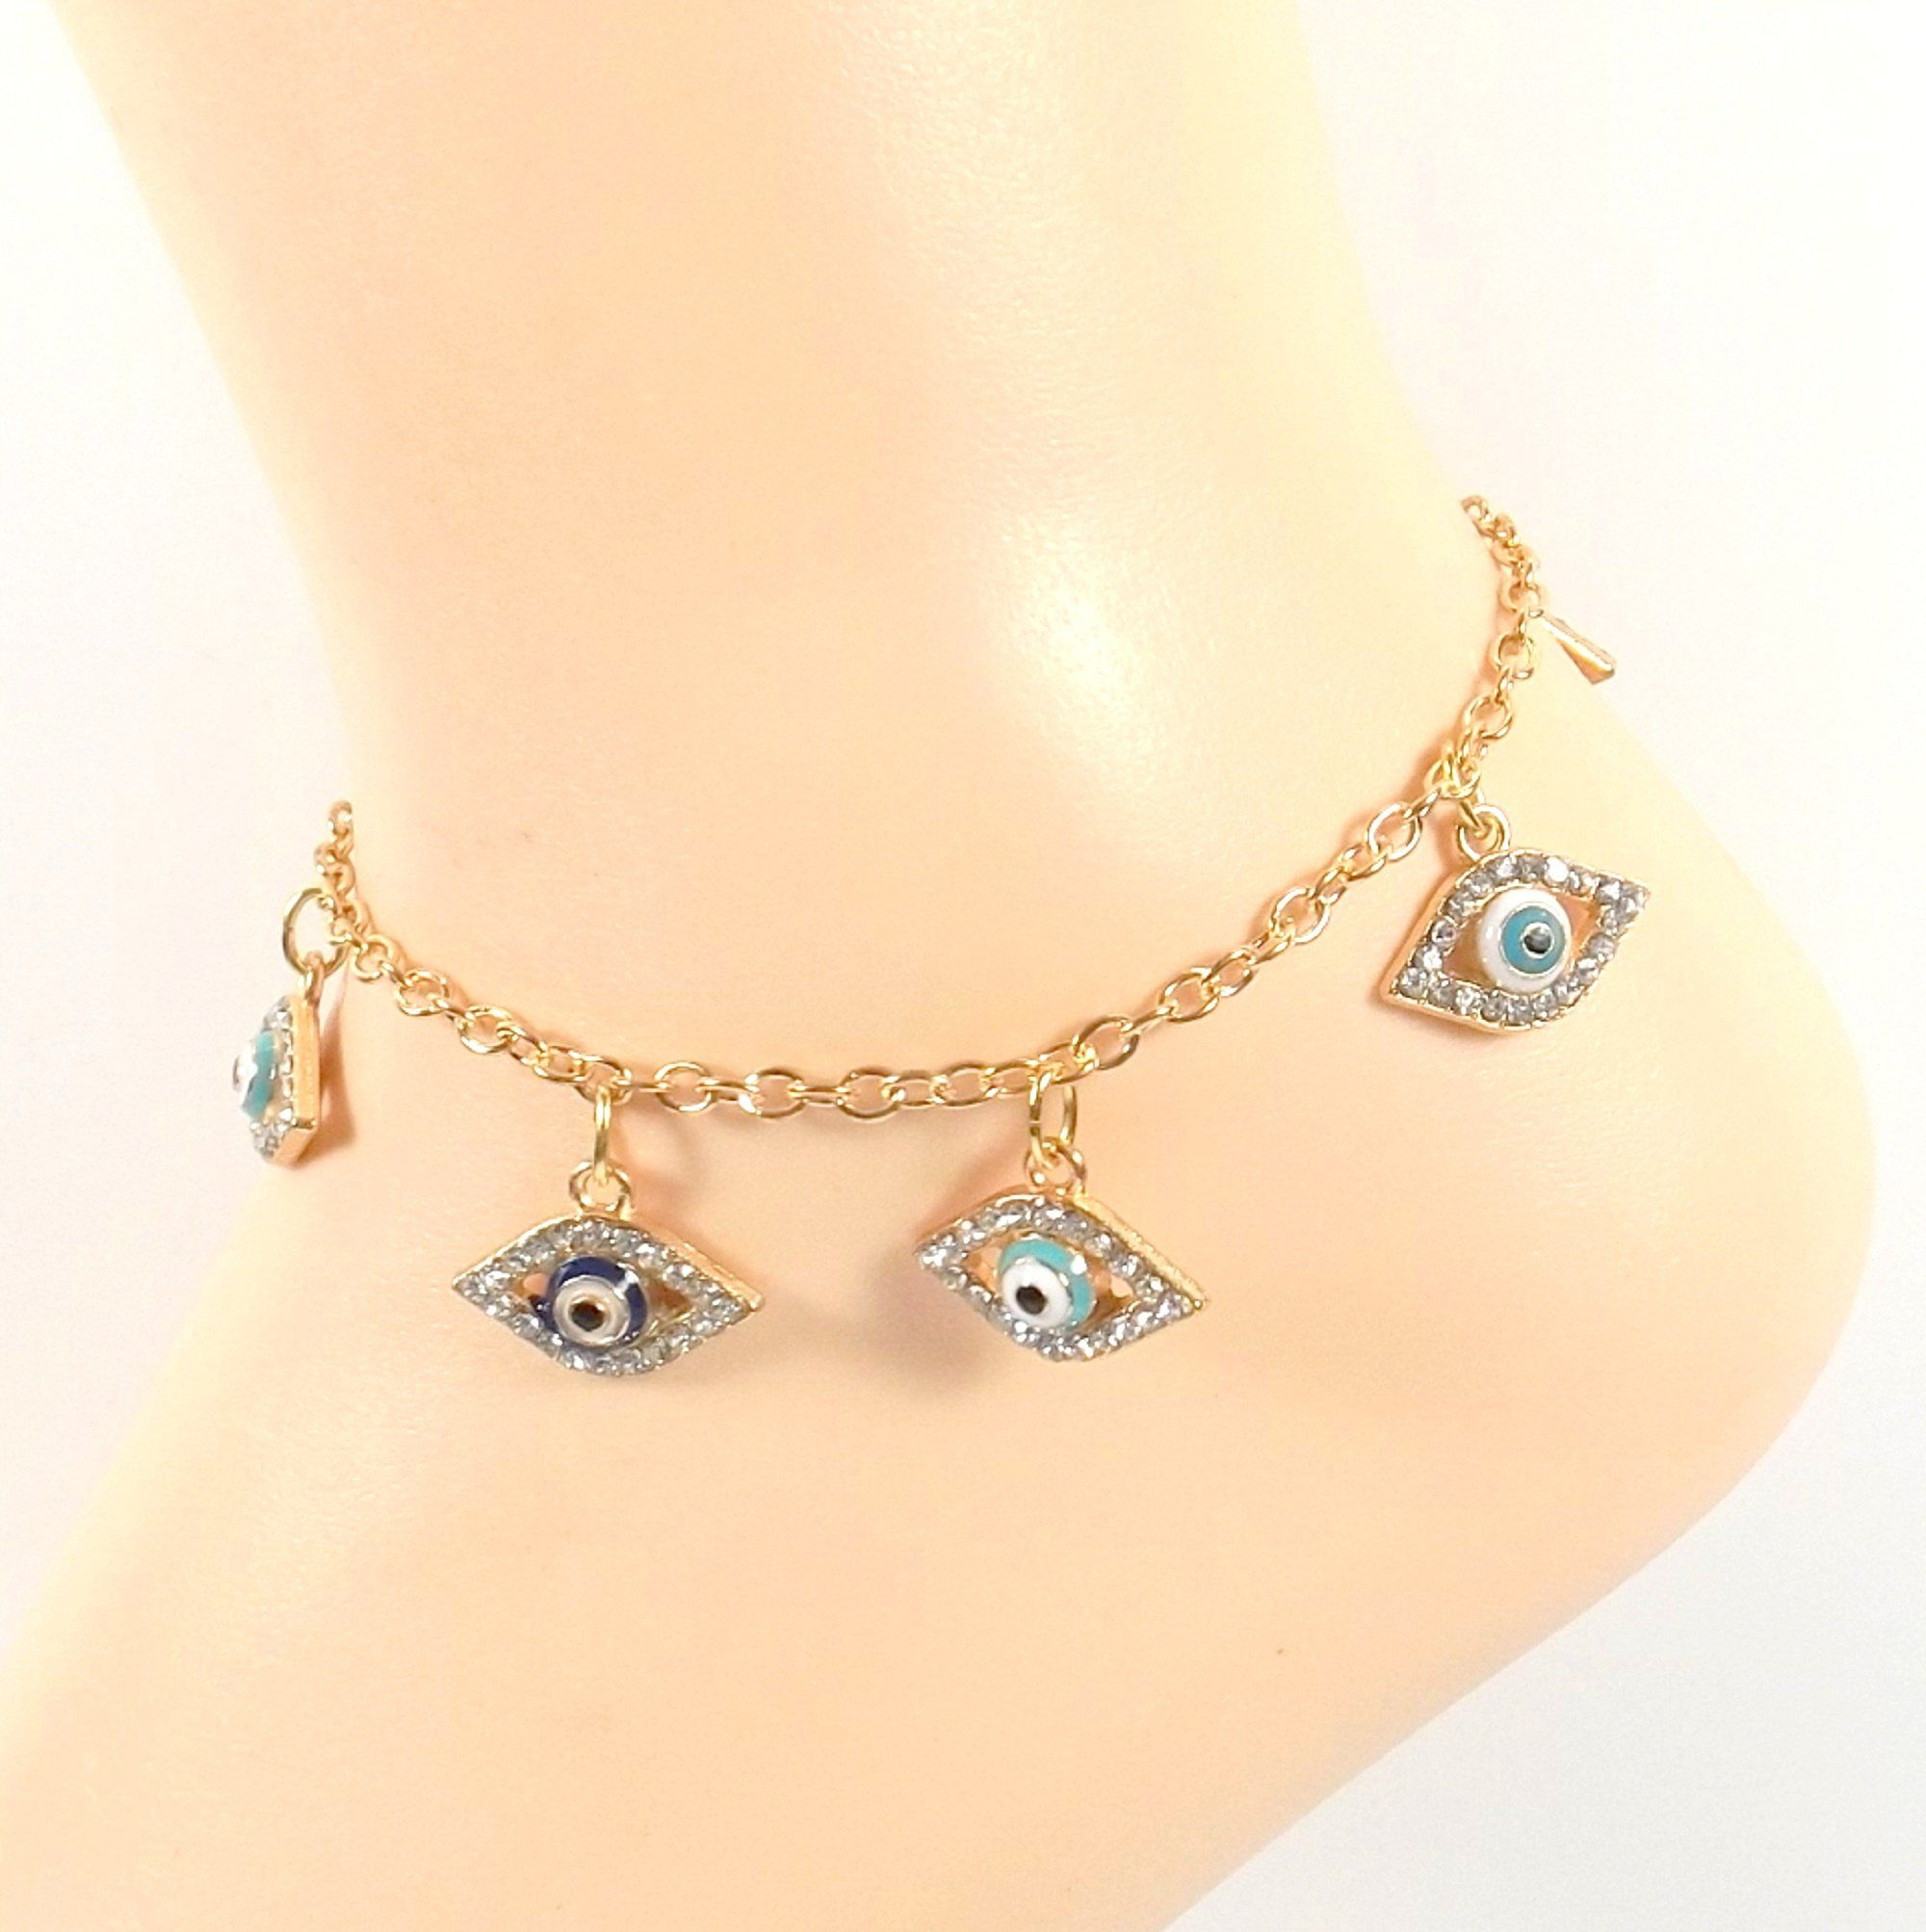 Gold Rhinestone Enamel Evil Eye- Golden Ankle Bracelet - Gift for Her - Present Woman- Mother's Day Gift. Protect yourself or your loved one from the evils of life with this gorgeous evil eye ankle. The gold has a bit of a rose tone the eye is hand painted in rich enamels with a rhinestone bezel and hangs from a matching chain with a lobster-claw clasp. This anklet is just the perfect gift for someone special, especially if it is yourself. Available in sizes 8-10 through customization…